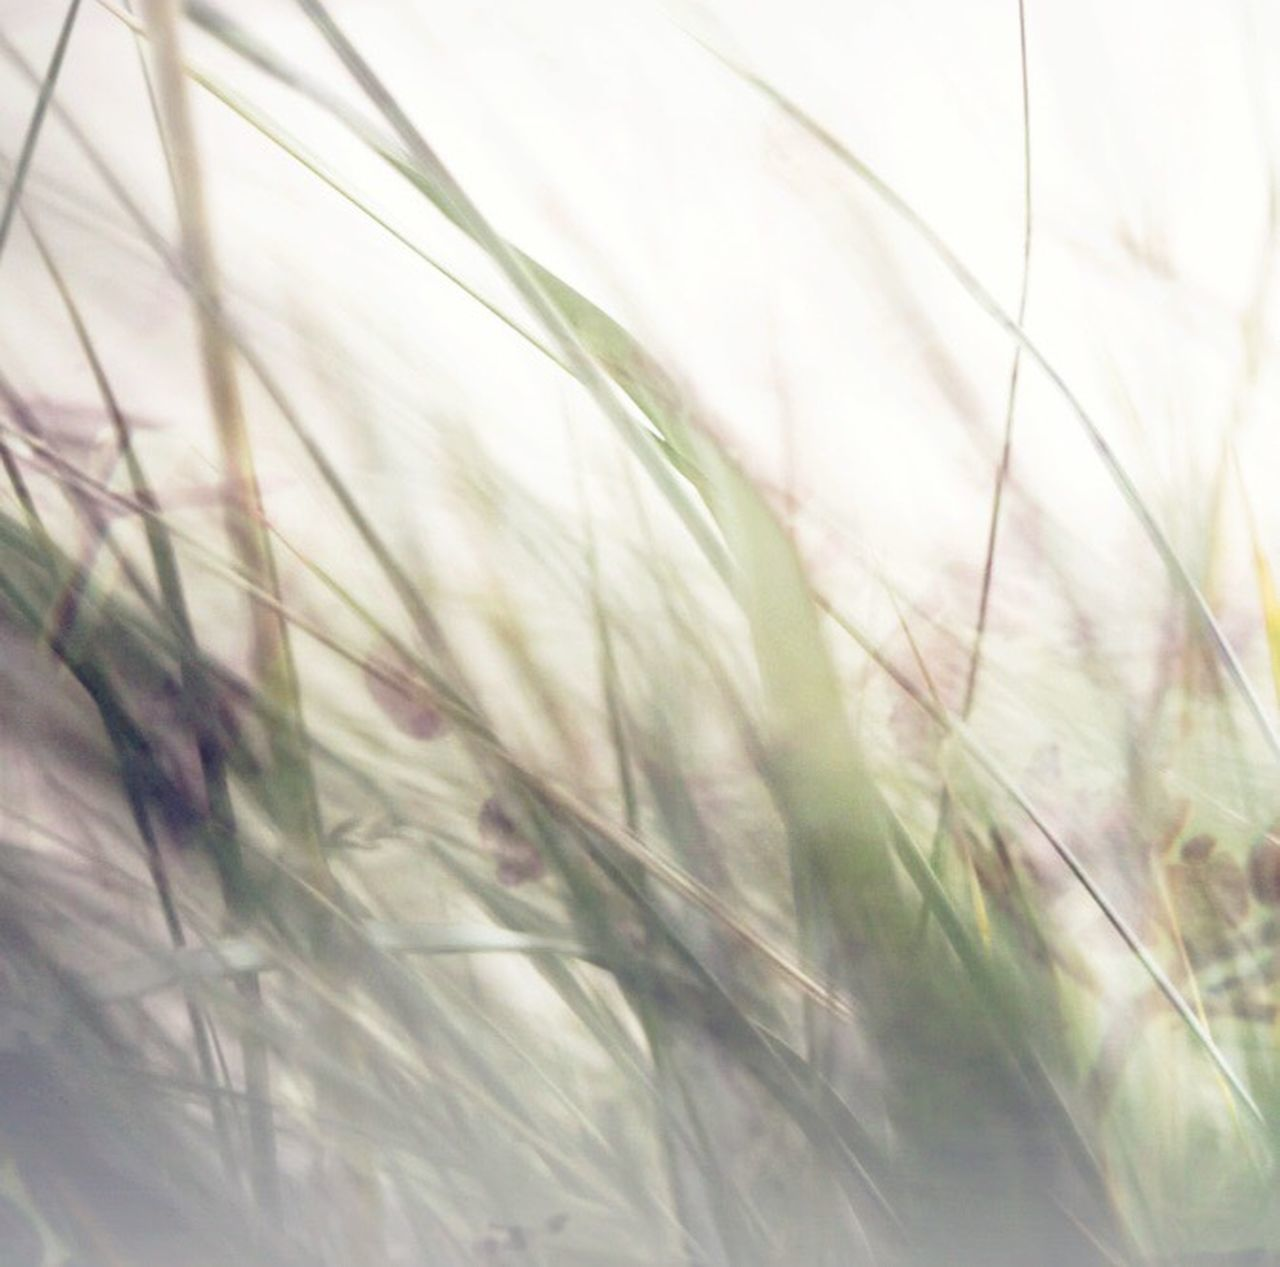 grass, nature, growth, plant, selective focus, no people, close-up, day, field, outdoors, beauty in nature, tranquility, backgrounds, freshness